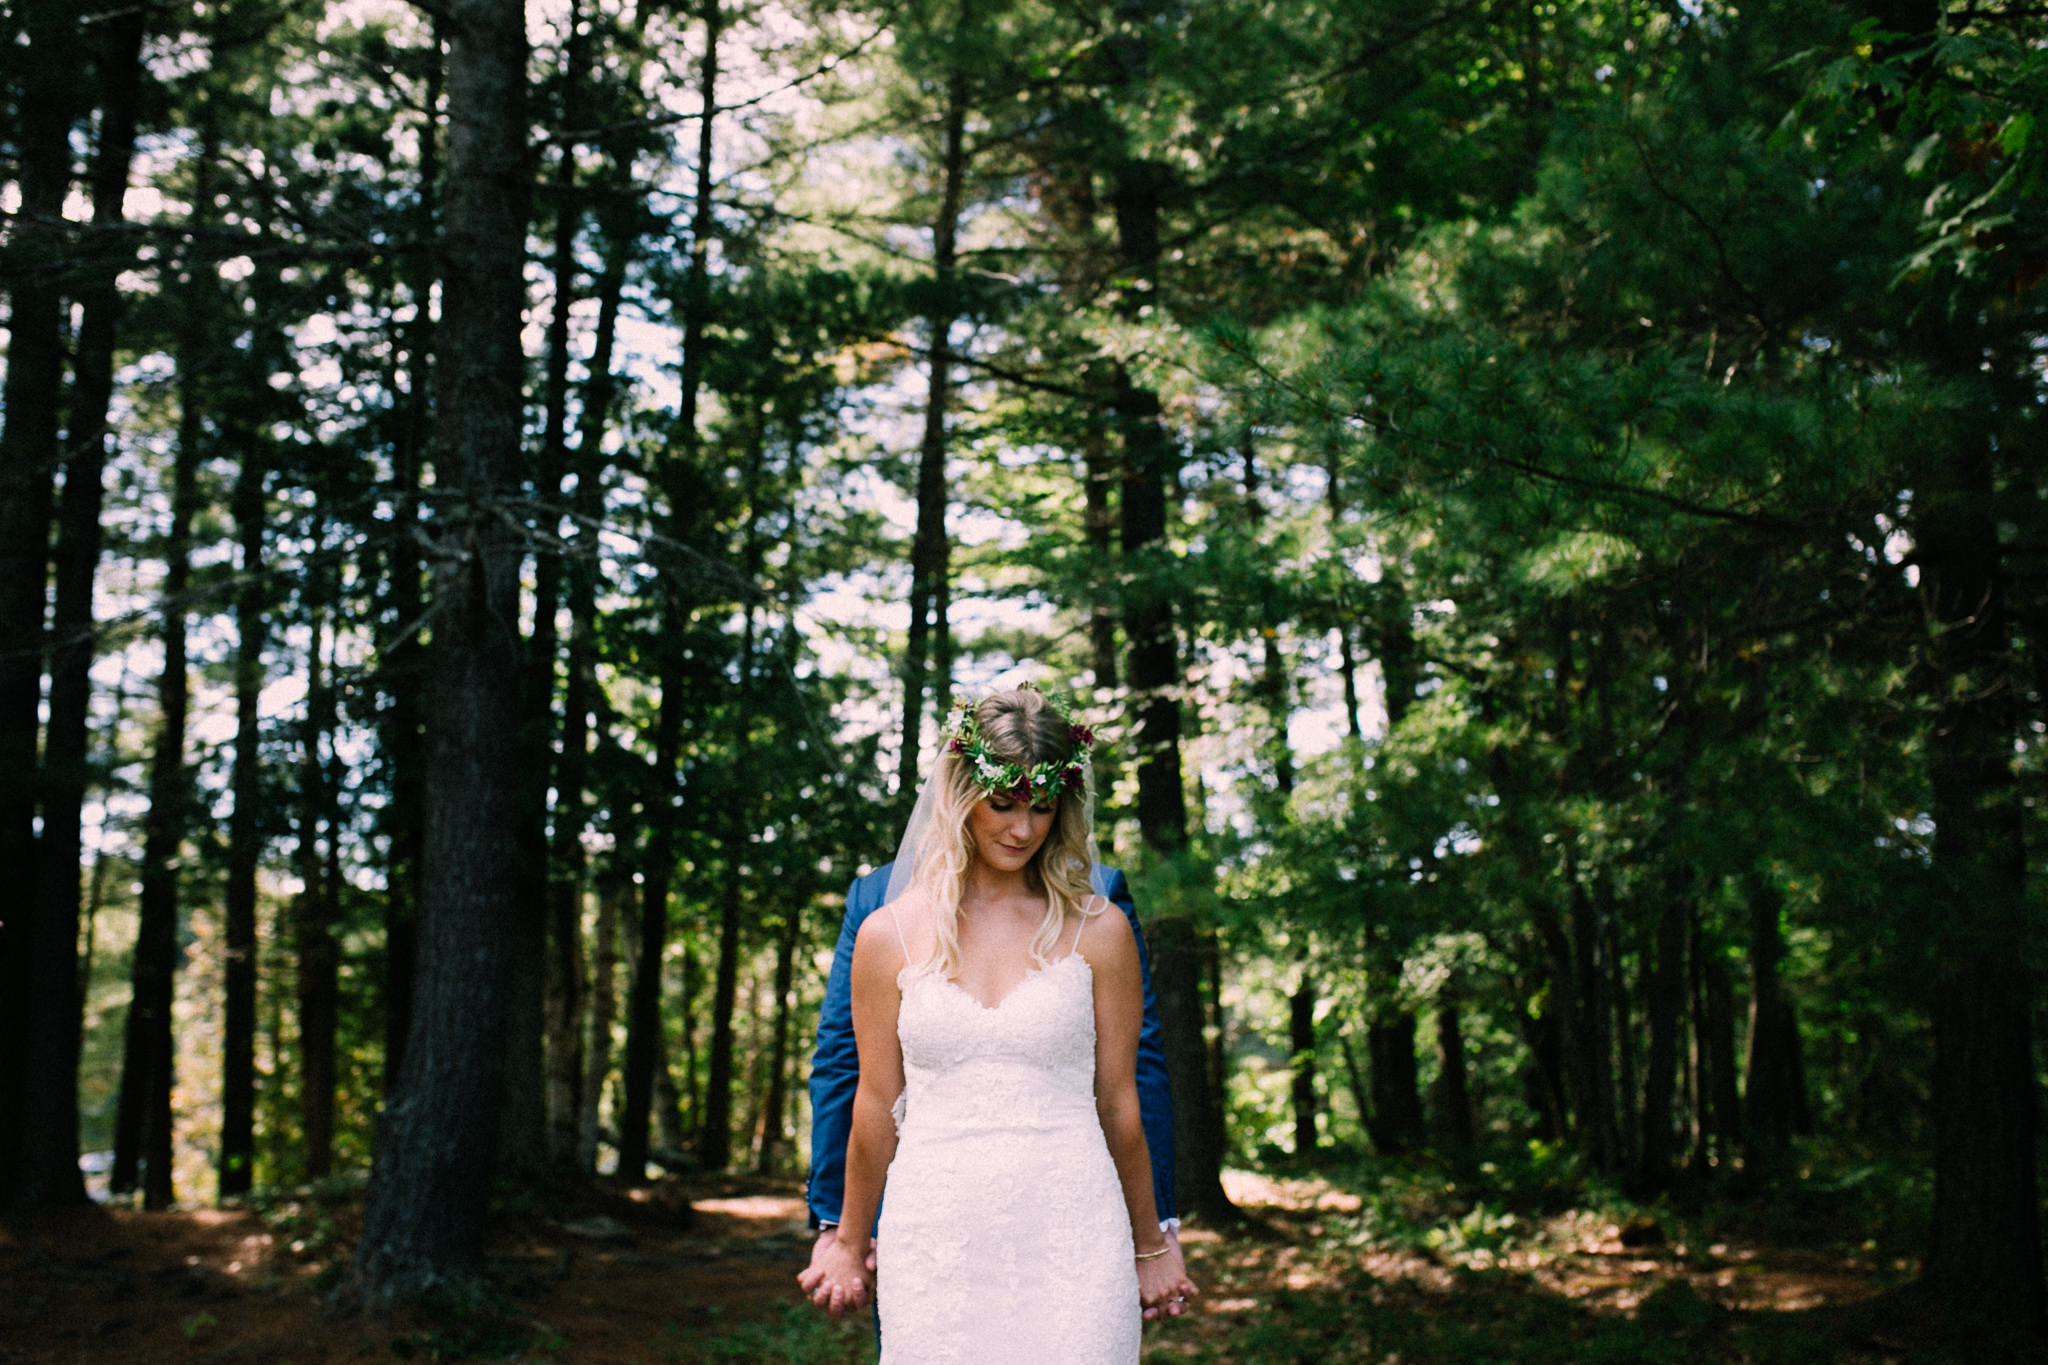 Muskoka lakeside wedding at Port Cunnington Lodge by Max Wong Photo (13)